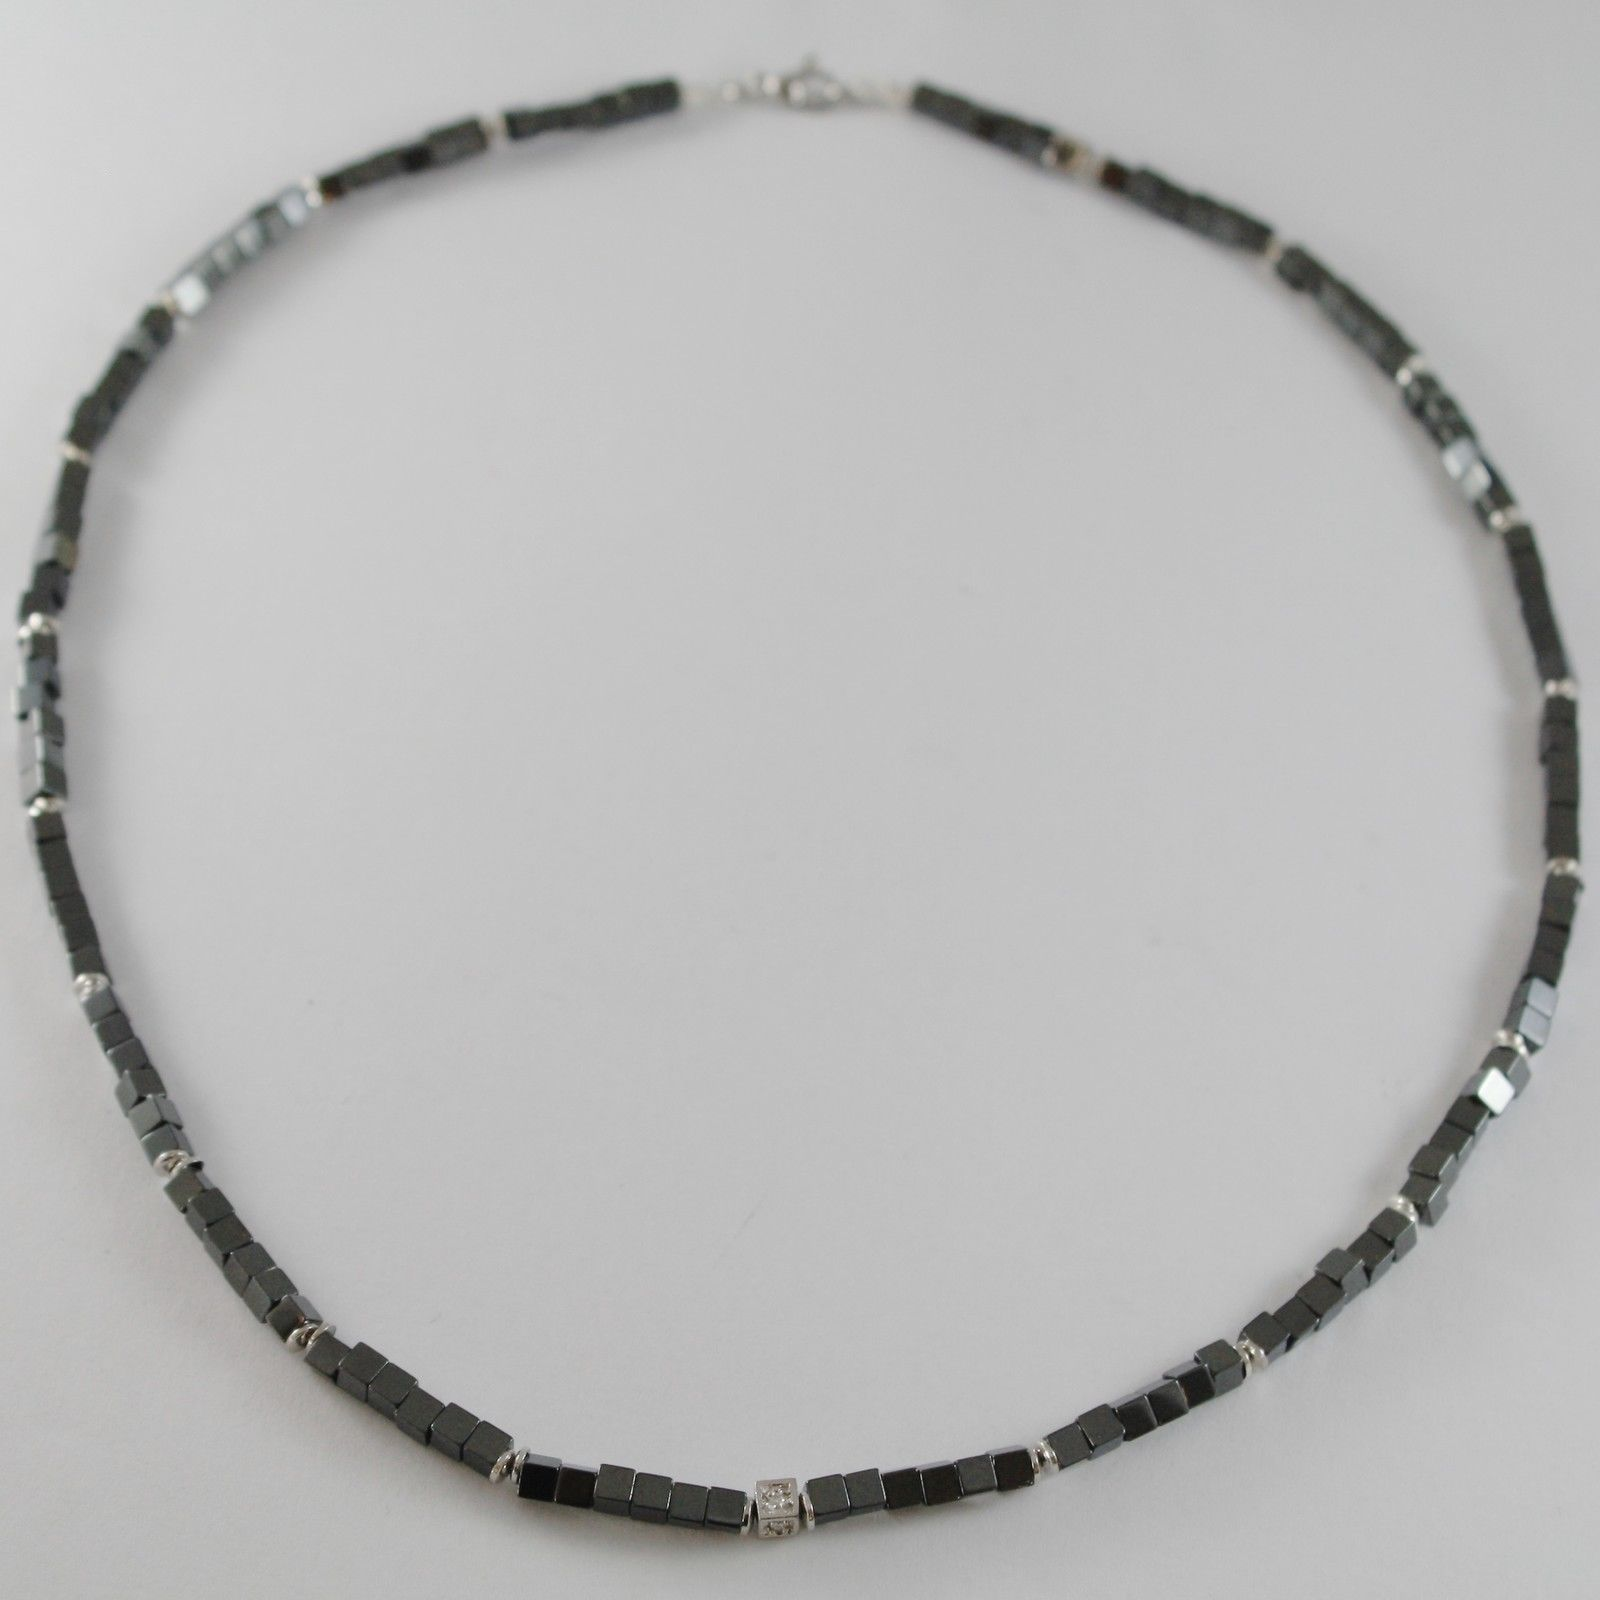 NECKLACE GIADAN 925 SILVER HEMATITE LUCID AND 8 DIAMONDS WHITE MADE IN ITALY